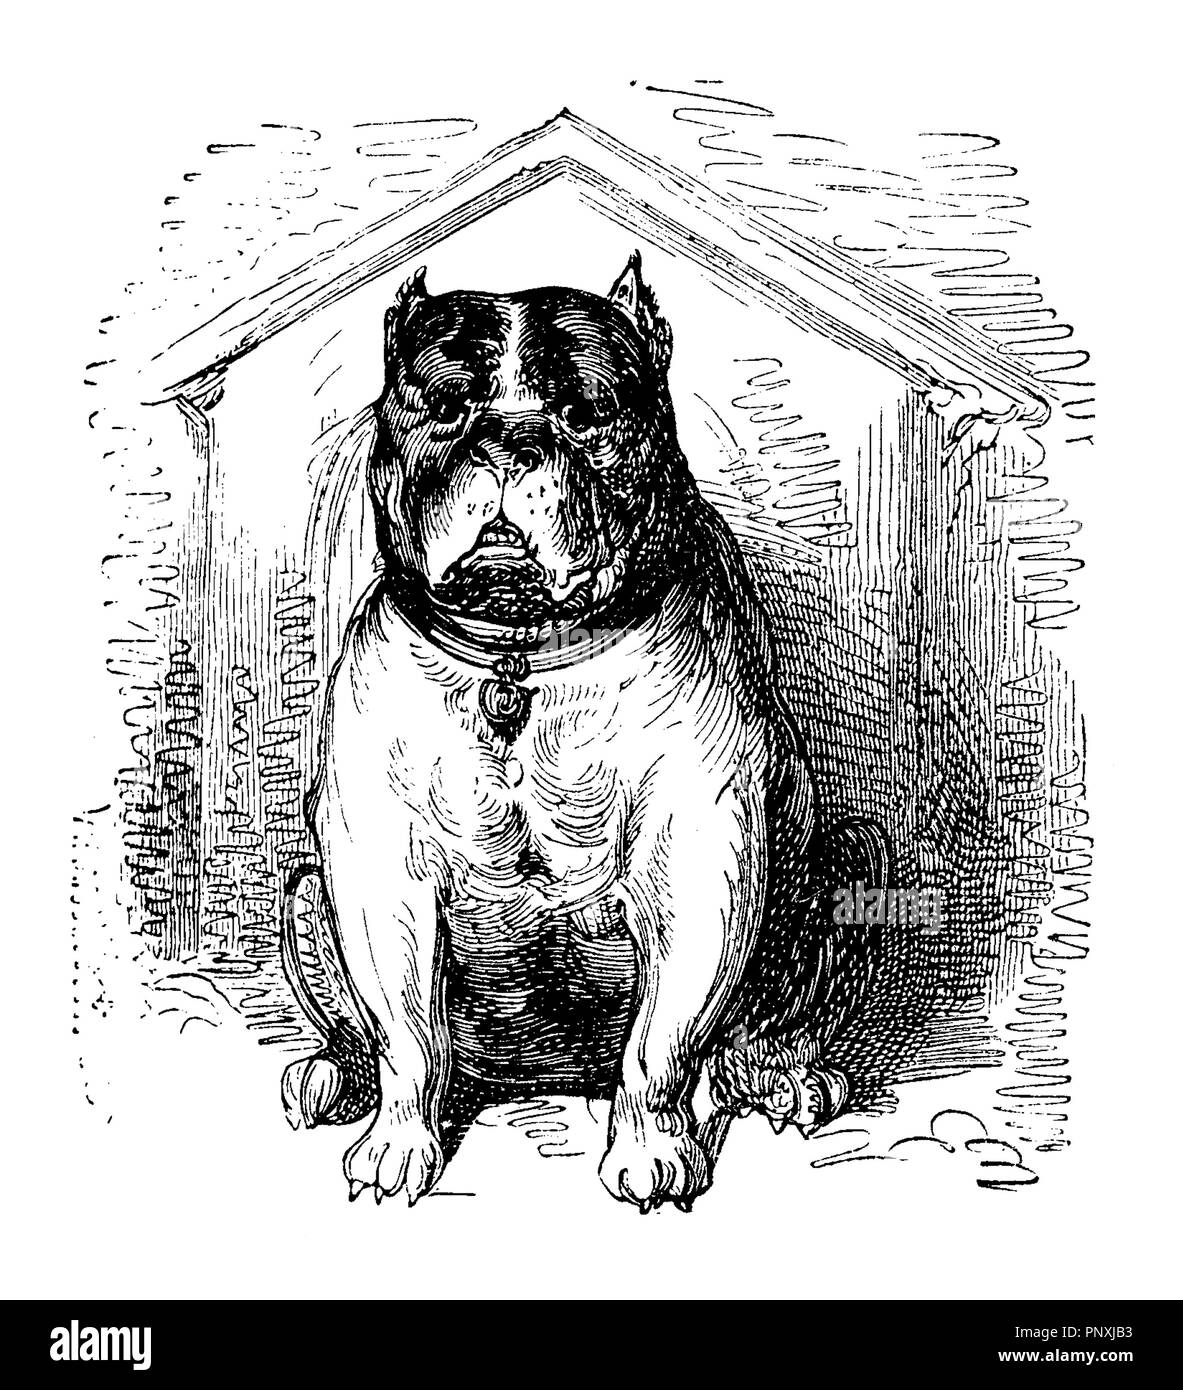 Imposing bulldog takes seriously its watch dog role, vintage print - Stock Image